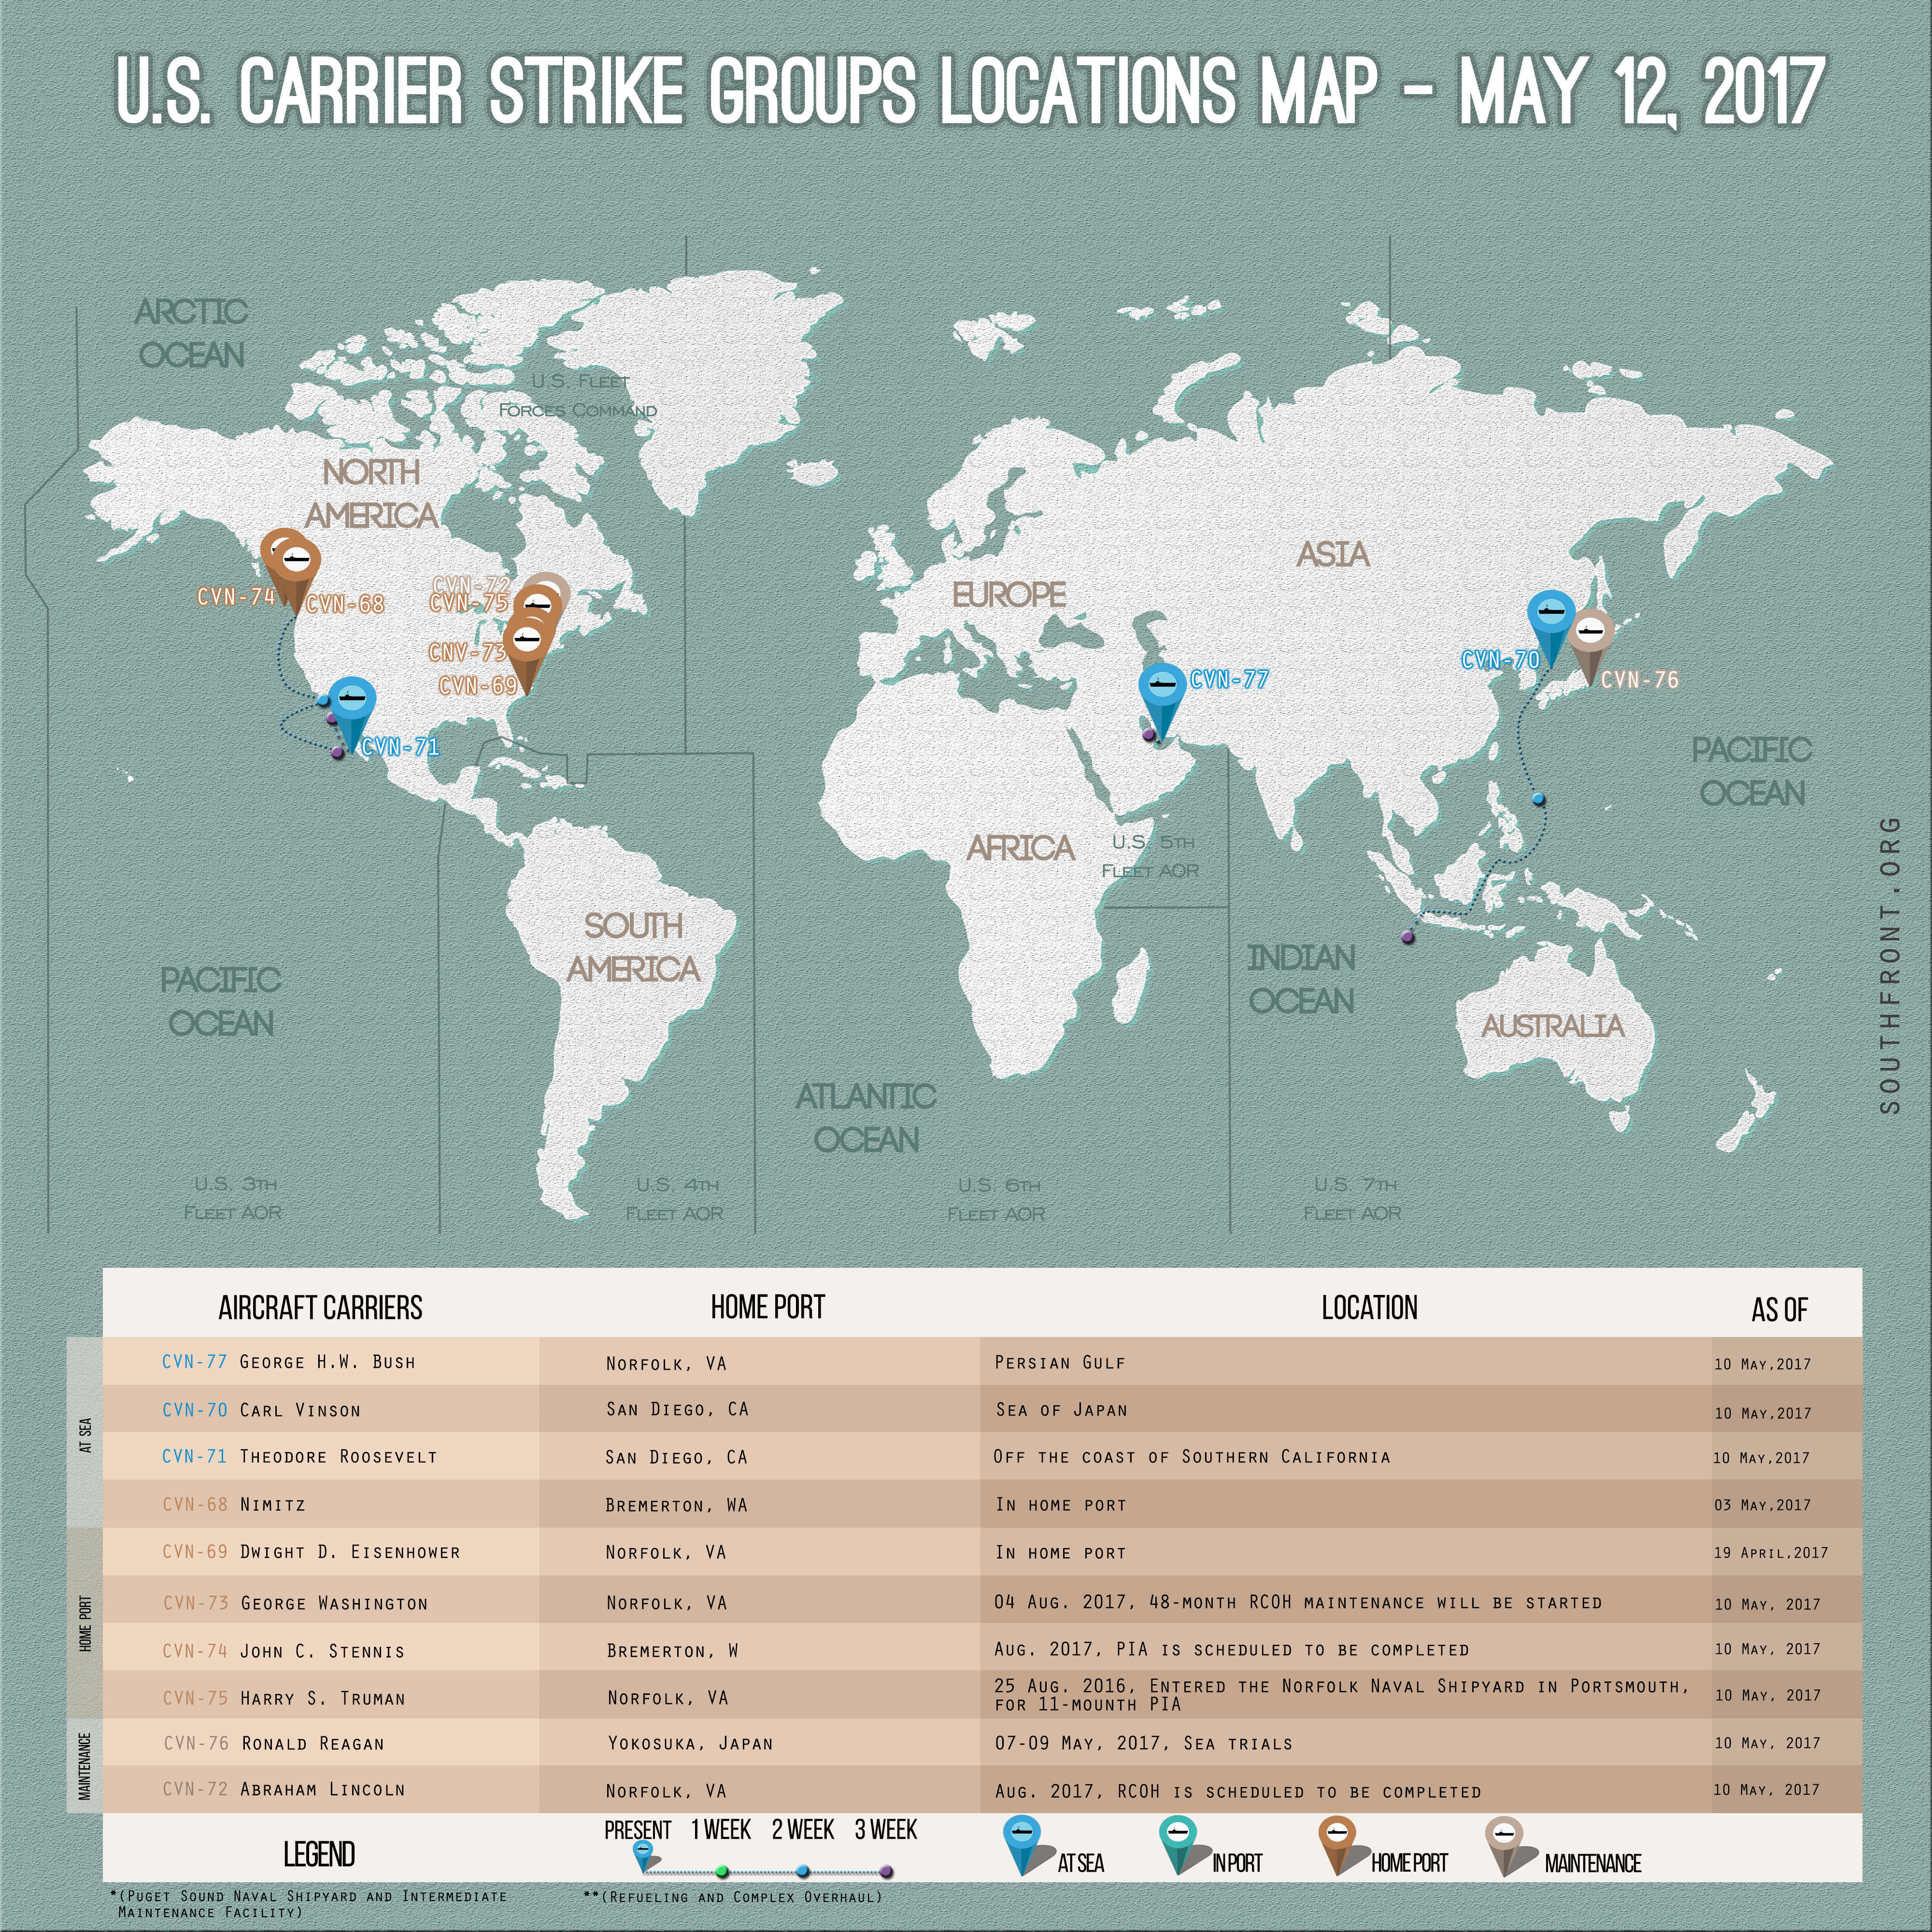 US Carrier Strike Groups Locations Map – May 12, 2017